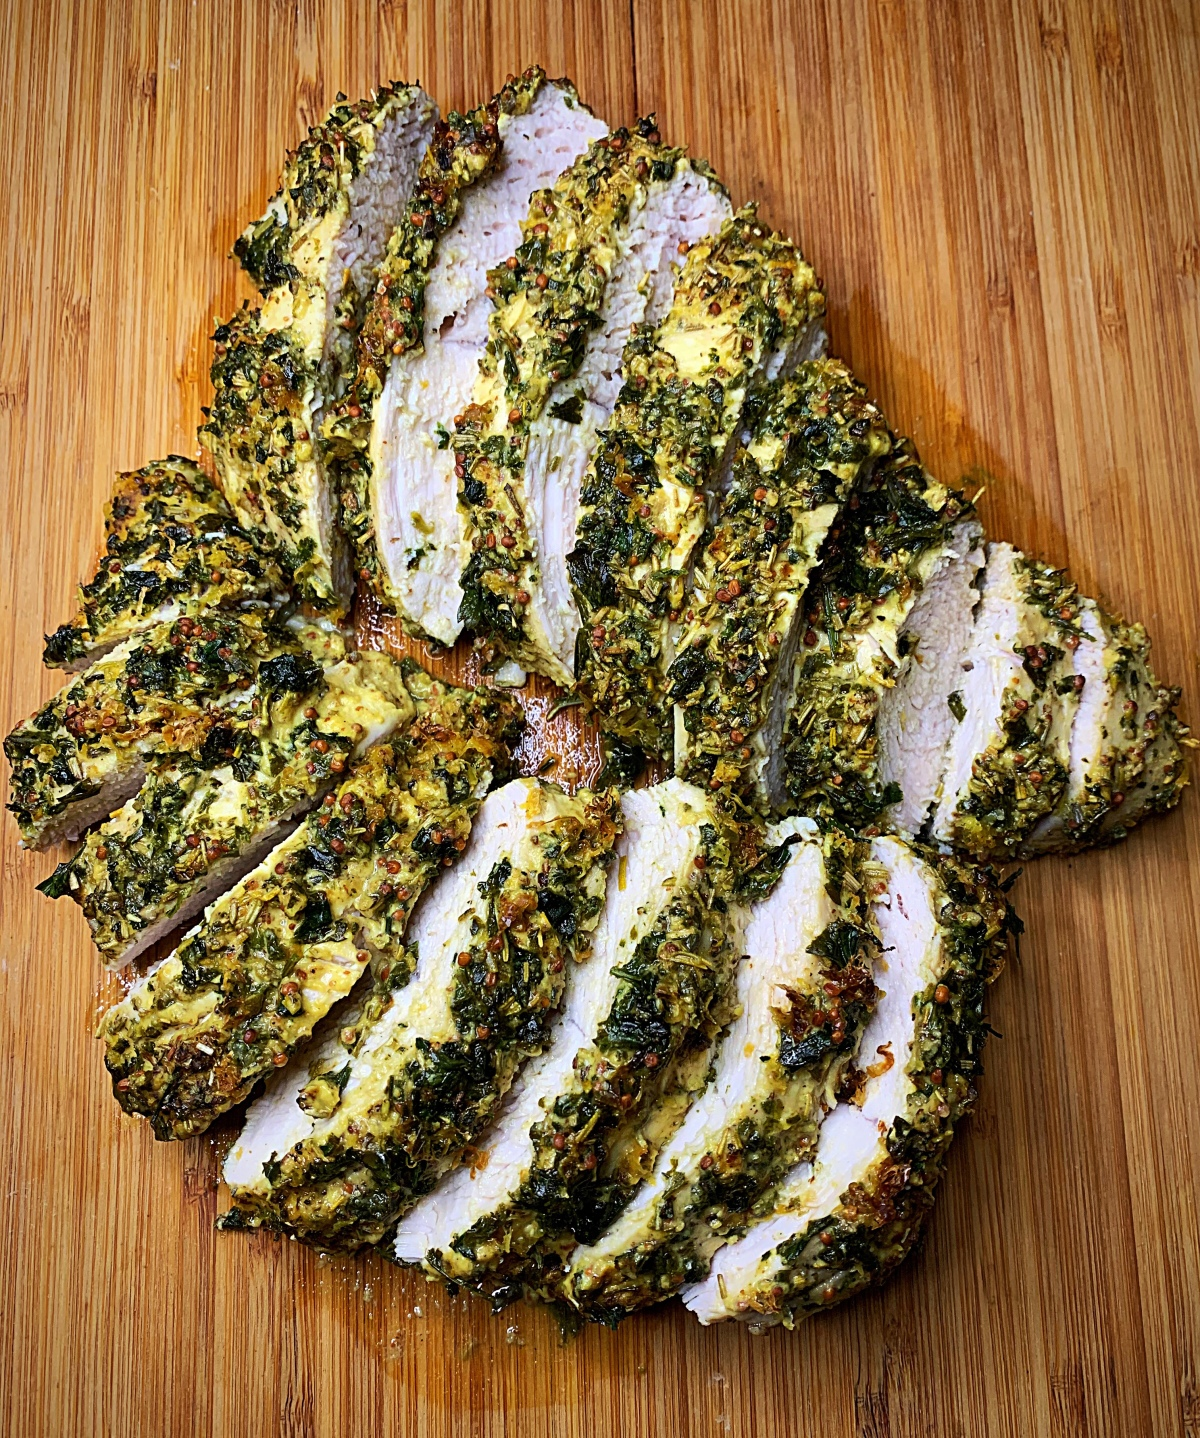 Lemon-Herb Roasted Turkey Tenderloin